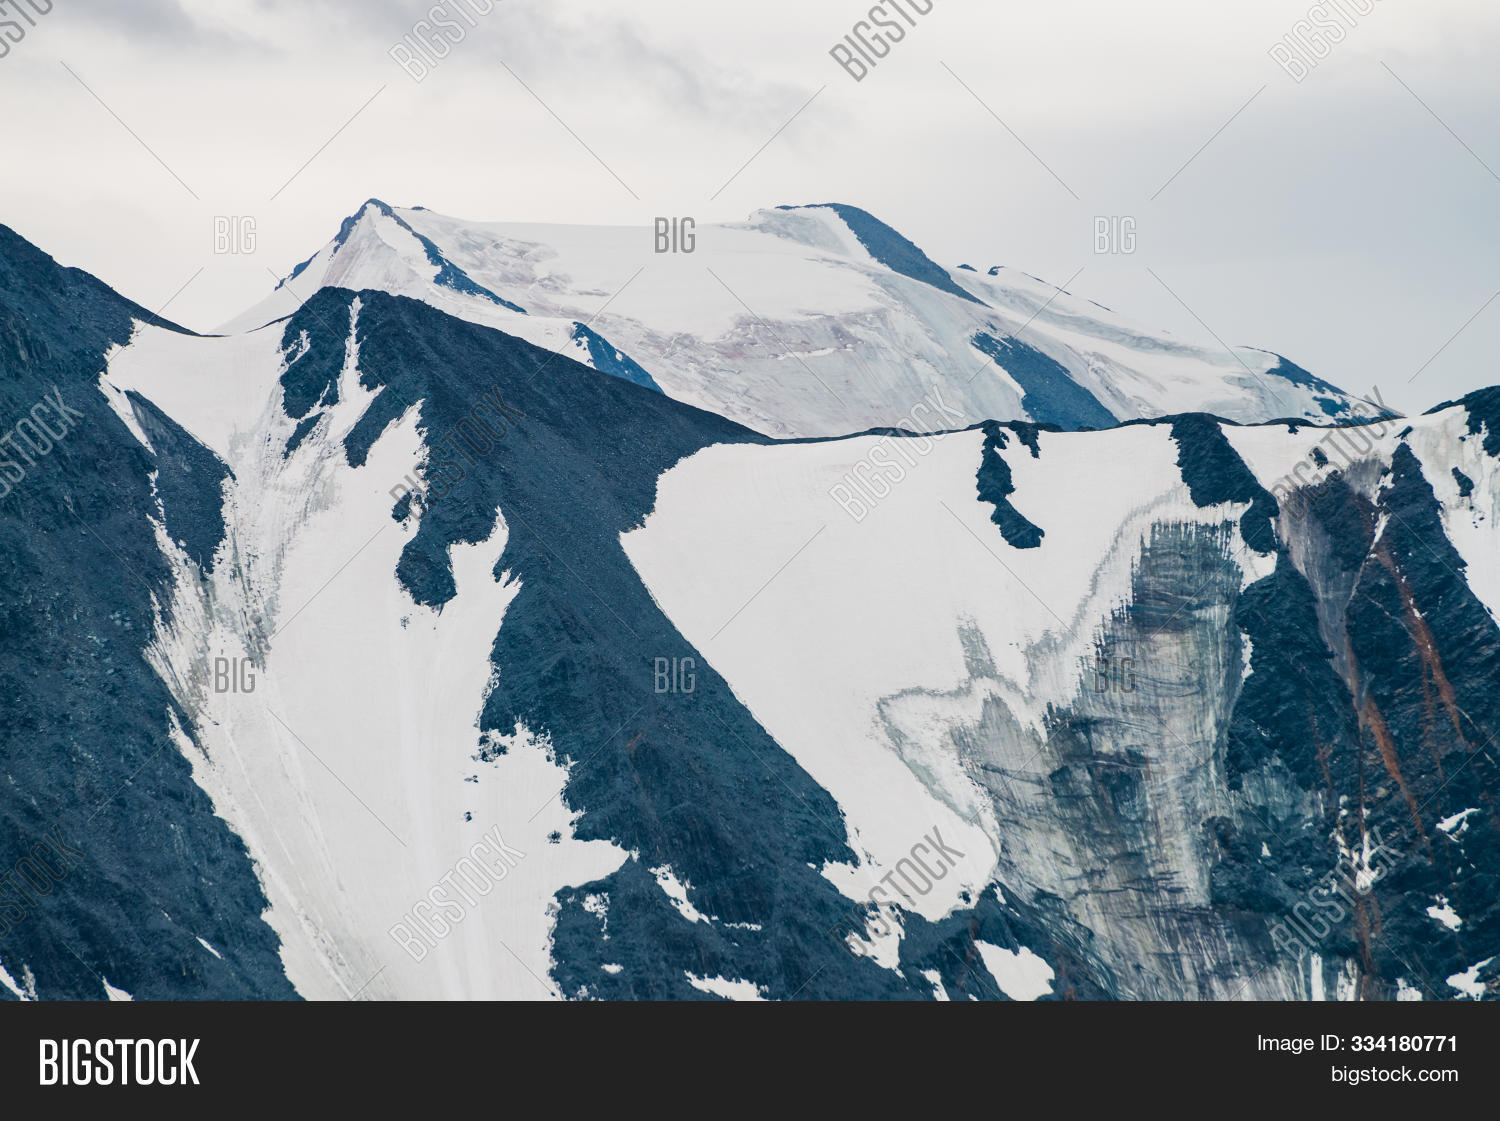 Altai,alpine,altitude,atmospheric,background,beautiful,big,cold,environment,giant,glacial,glacier,great,hanging,high,highlands,huge,ice,icy,idyllic,inspiring,landscape,massive,minimalism,montane,mount,mountain,mountainous,mountainscape,nature,peak,range,ridge,rockies,rocks,scenery,snow,snowbound,snowcapped,snowy,top,tourism,tranquility,travel,unimaginable,vast,wanderlust,wonderful